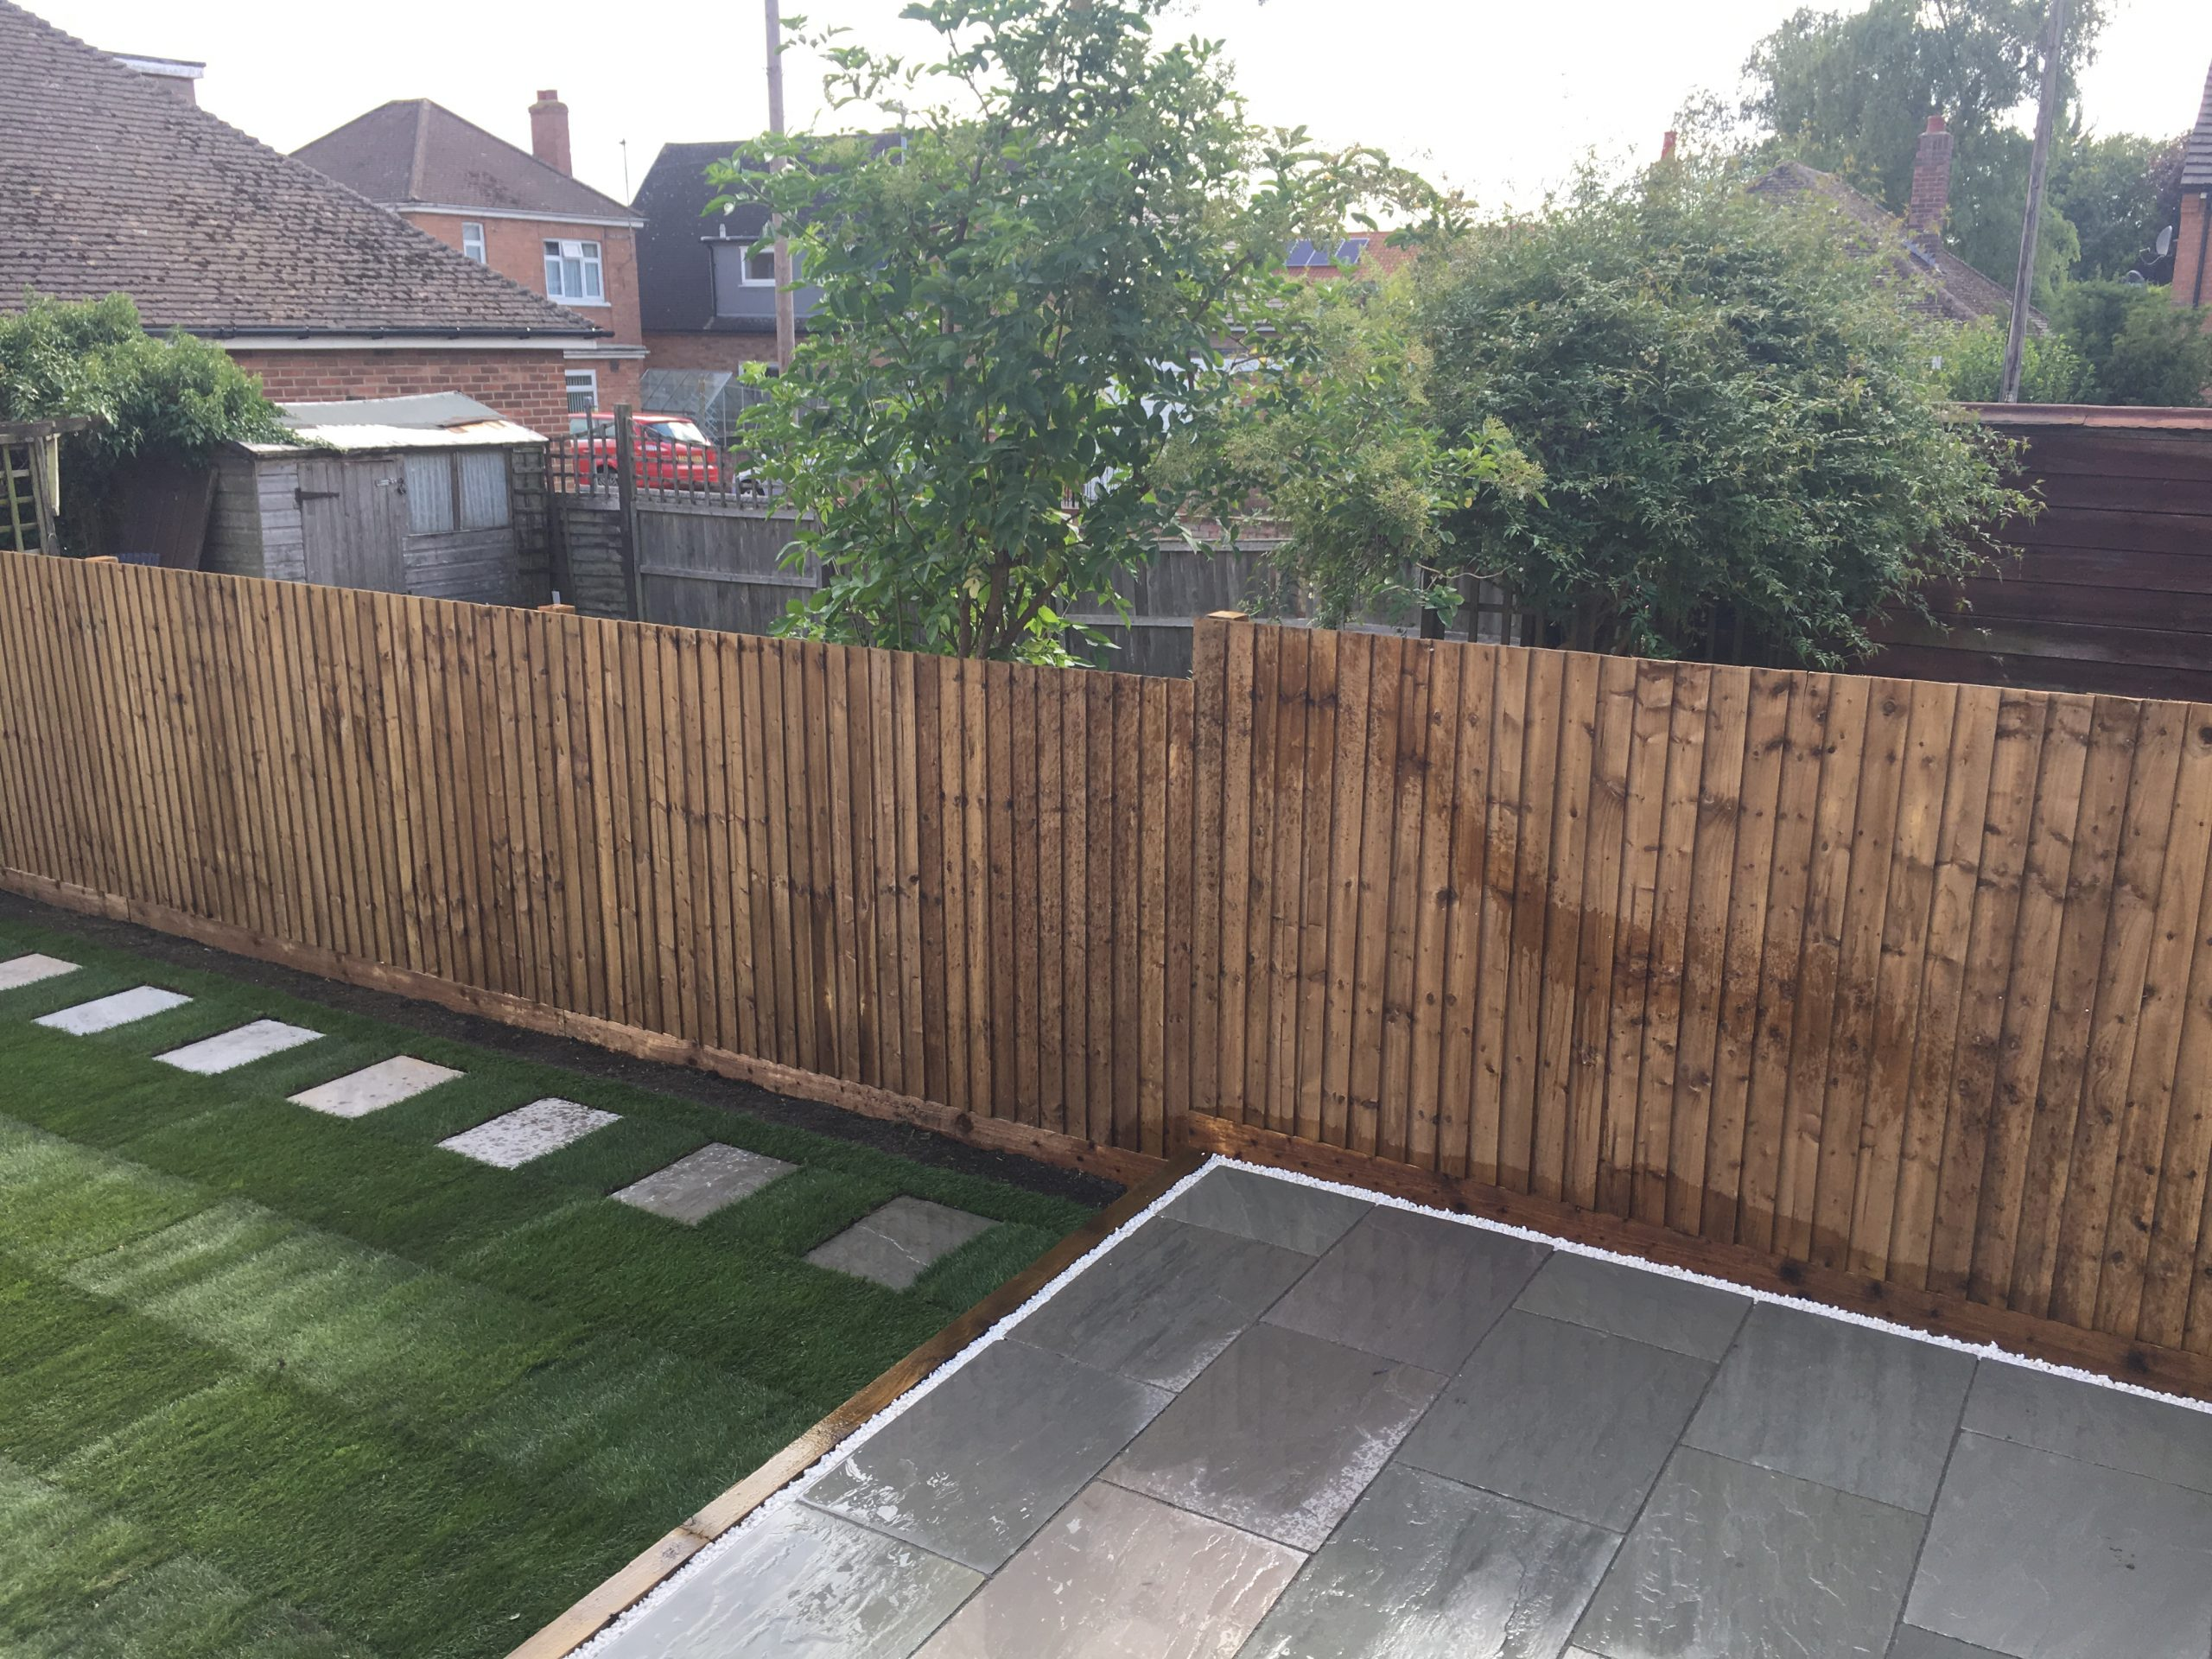 Emerald Landscapes - Lawn laying Cambridge